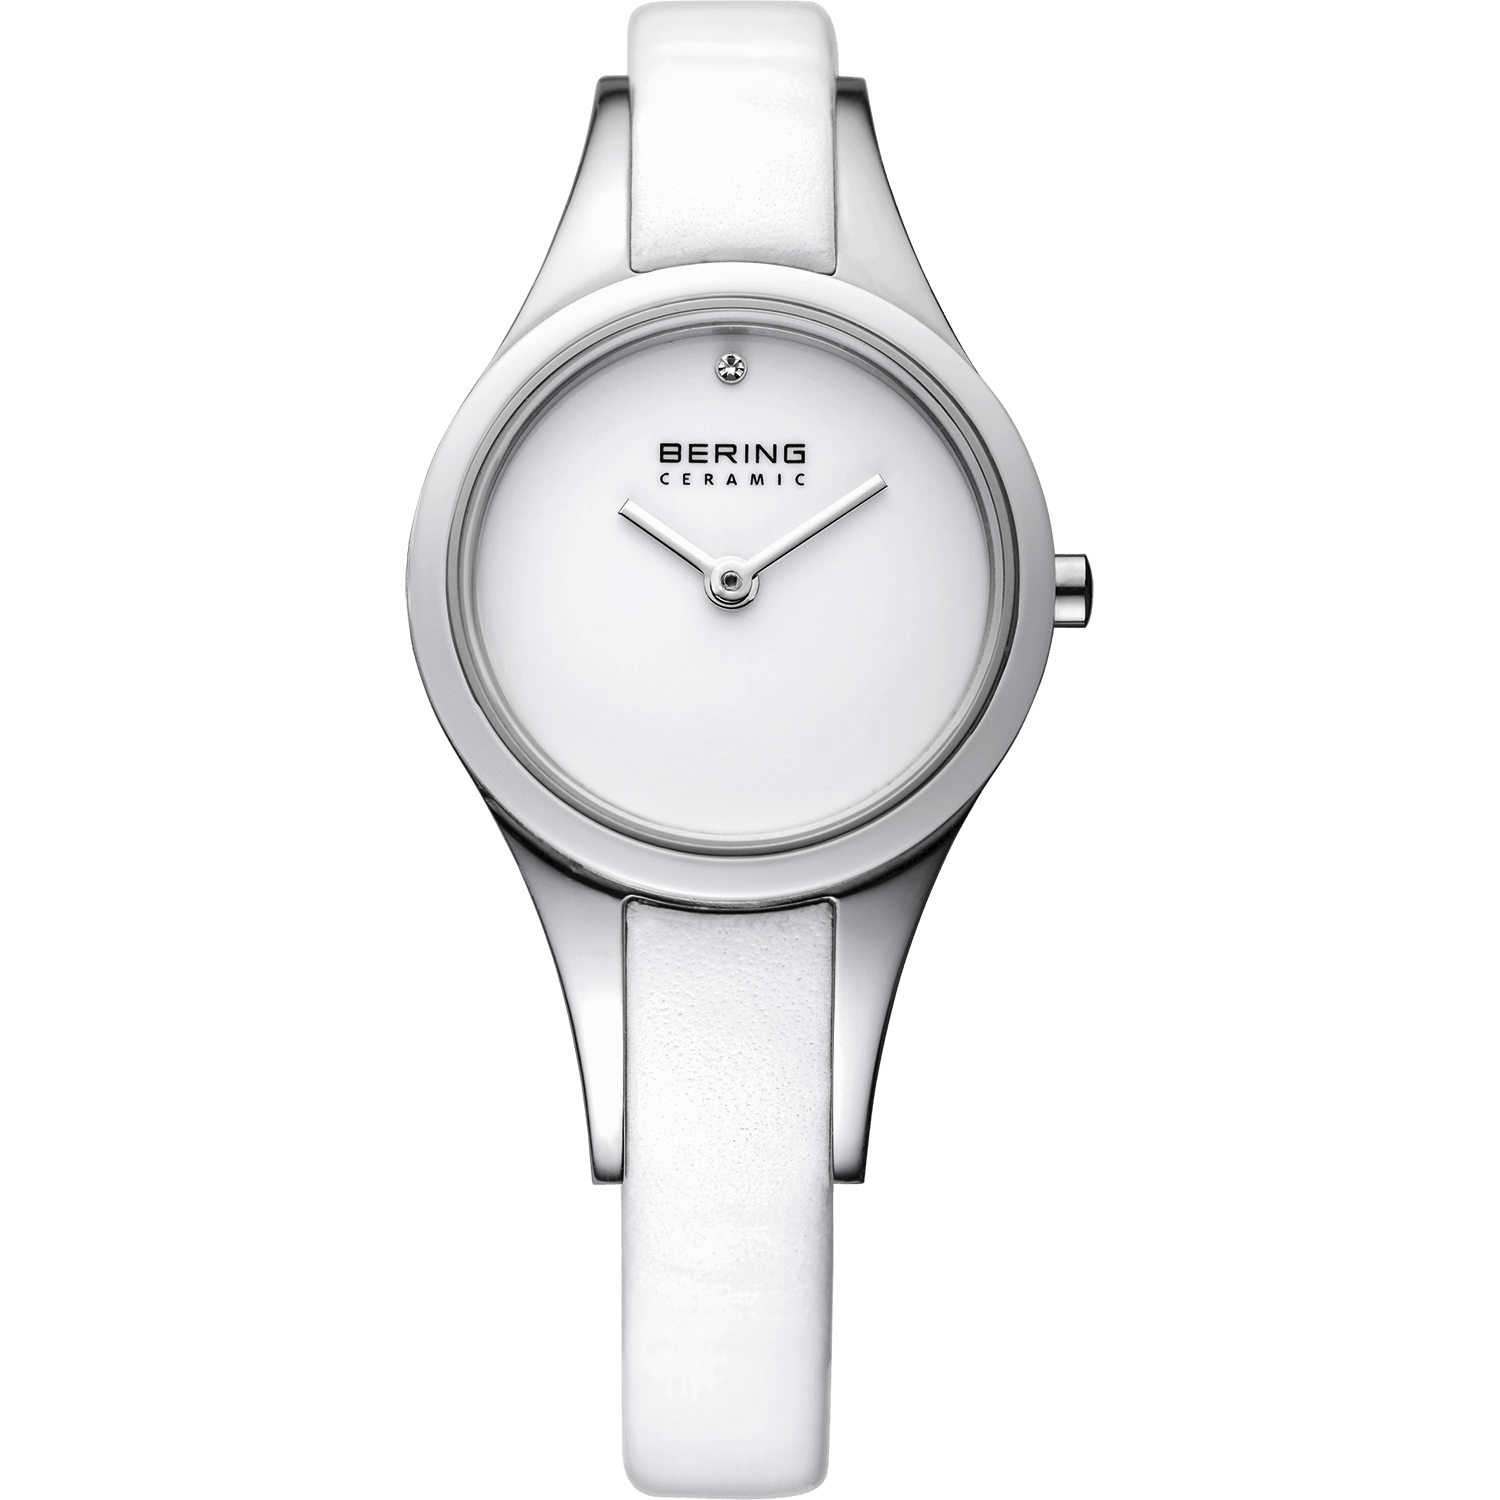 Bering Ceramic 33125-654 White 25 mm Women's Watch - COCOMI